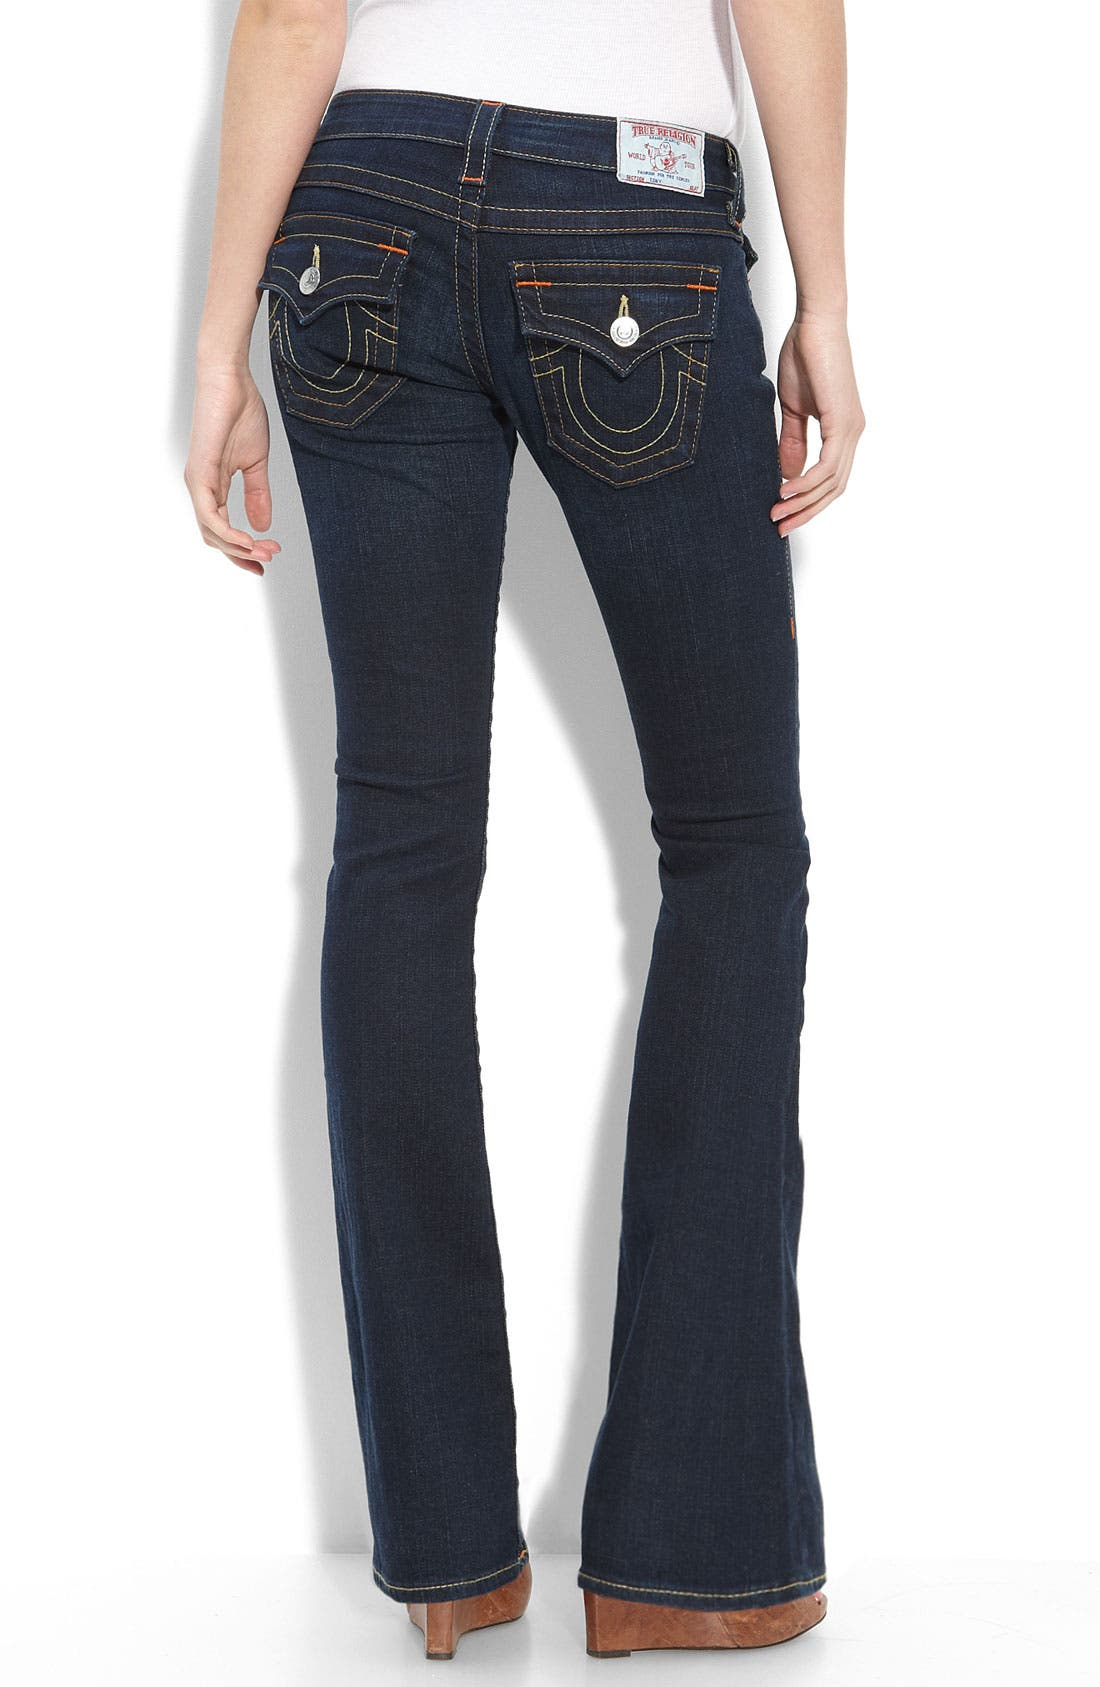 True Religion Brand Jeans 'Tony' Lean Bootcut Stretch Jeans ...